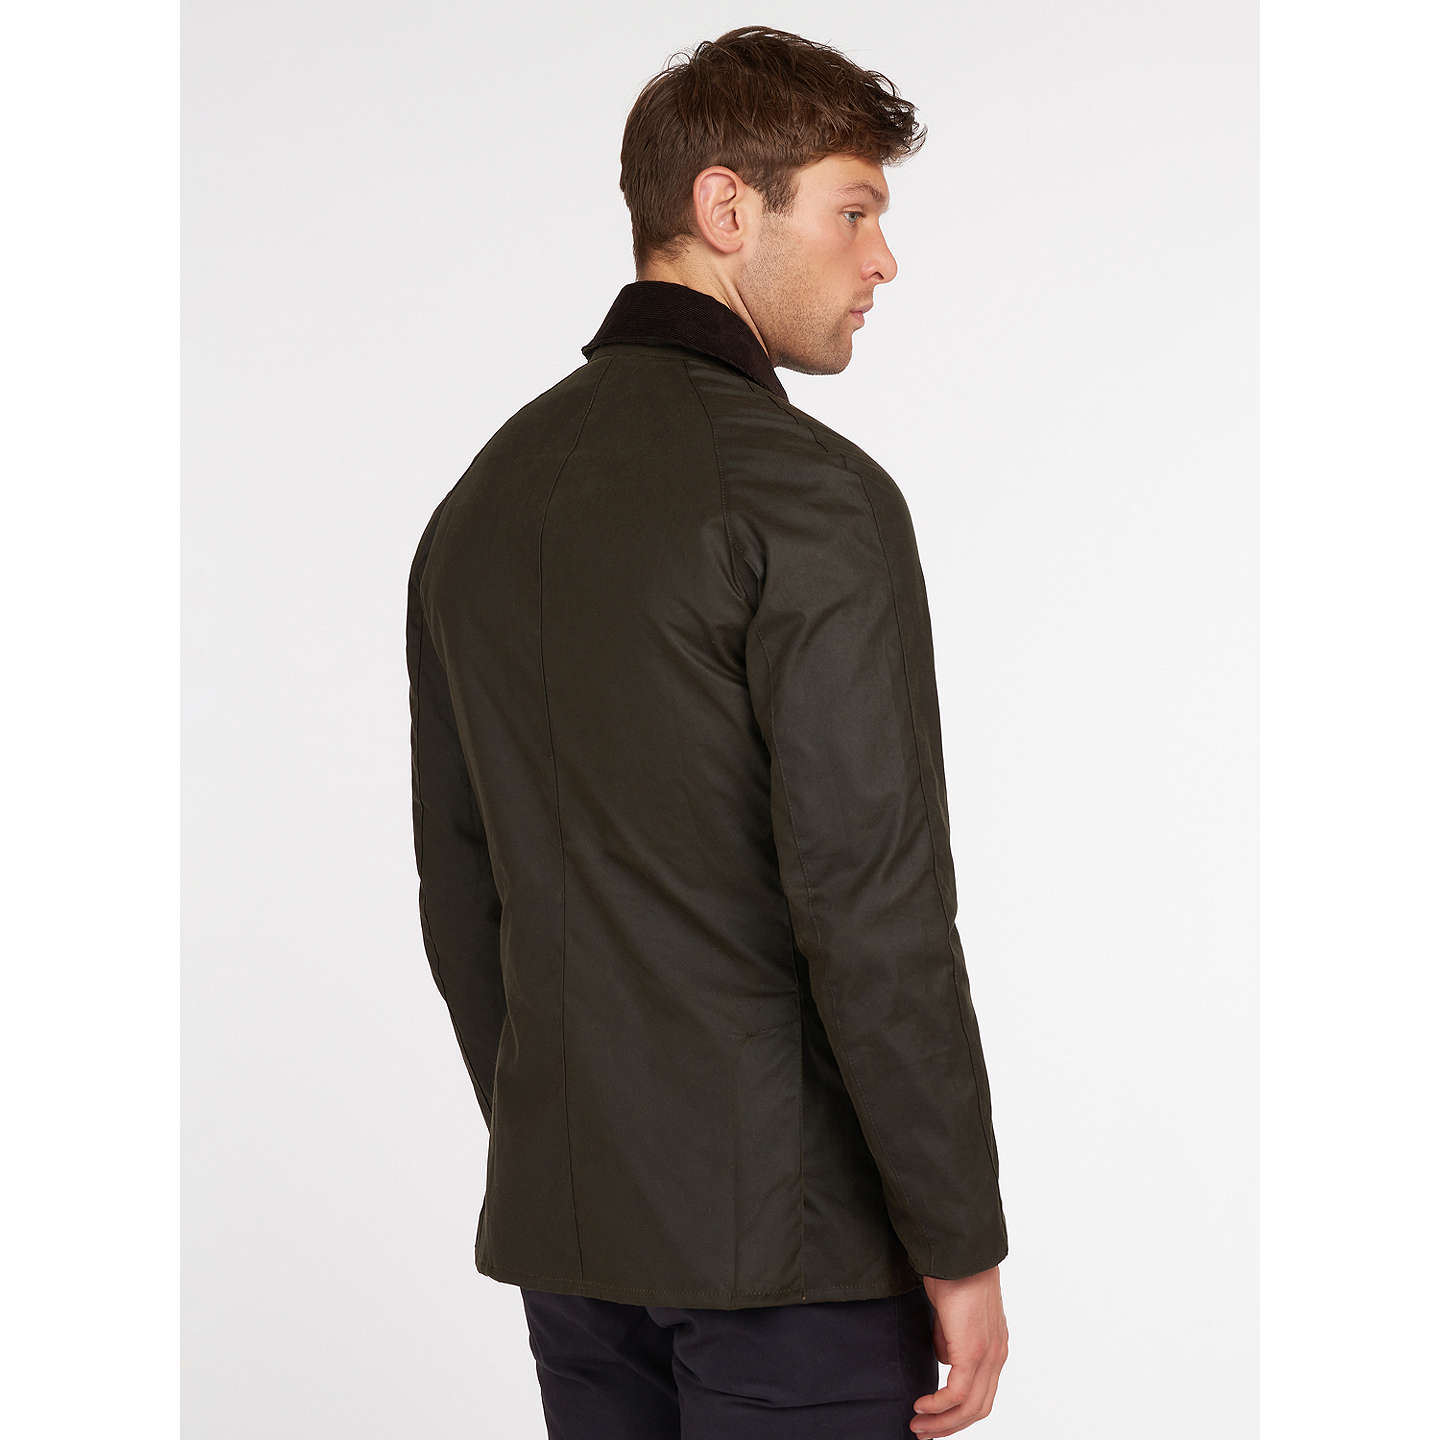 BuyBarbour Lifestyle Ashby Waxed Cotton Field Jacket, Olive, S Online at johnlewis.com